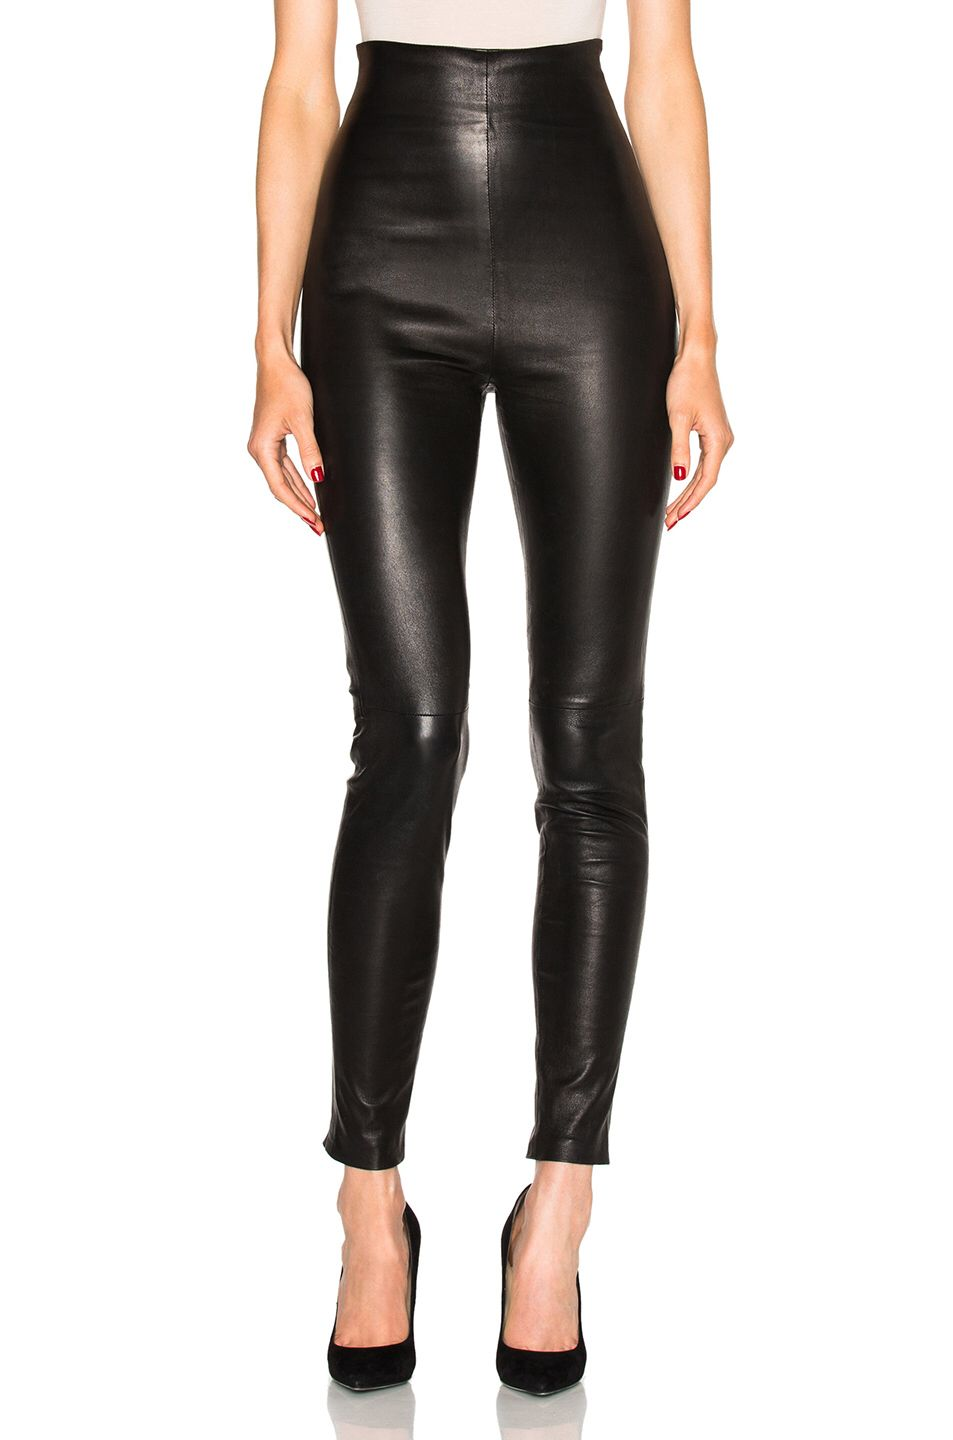 ThePerfext FWRD Exclusive Jessica High Waisted Leather Leggings